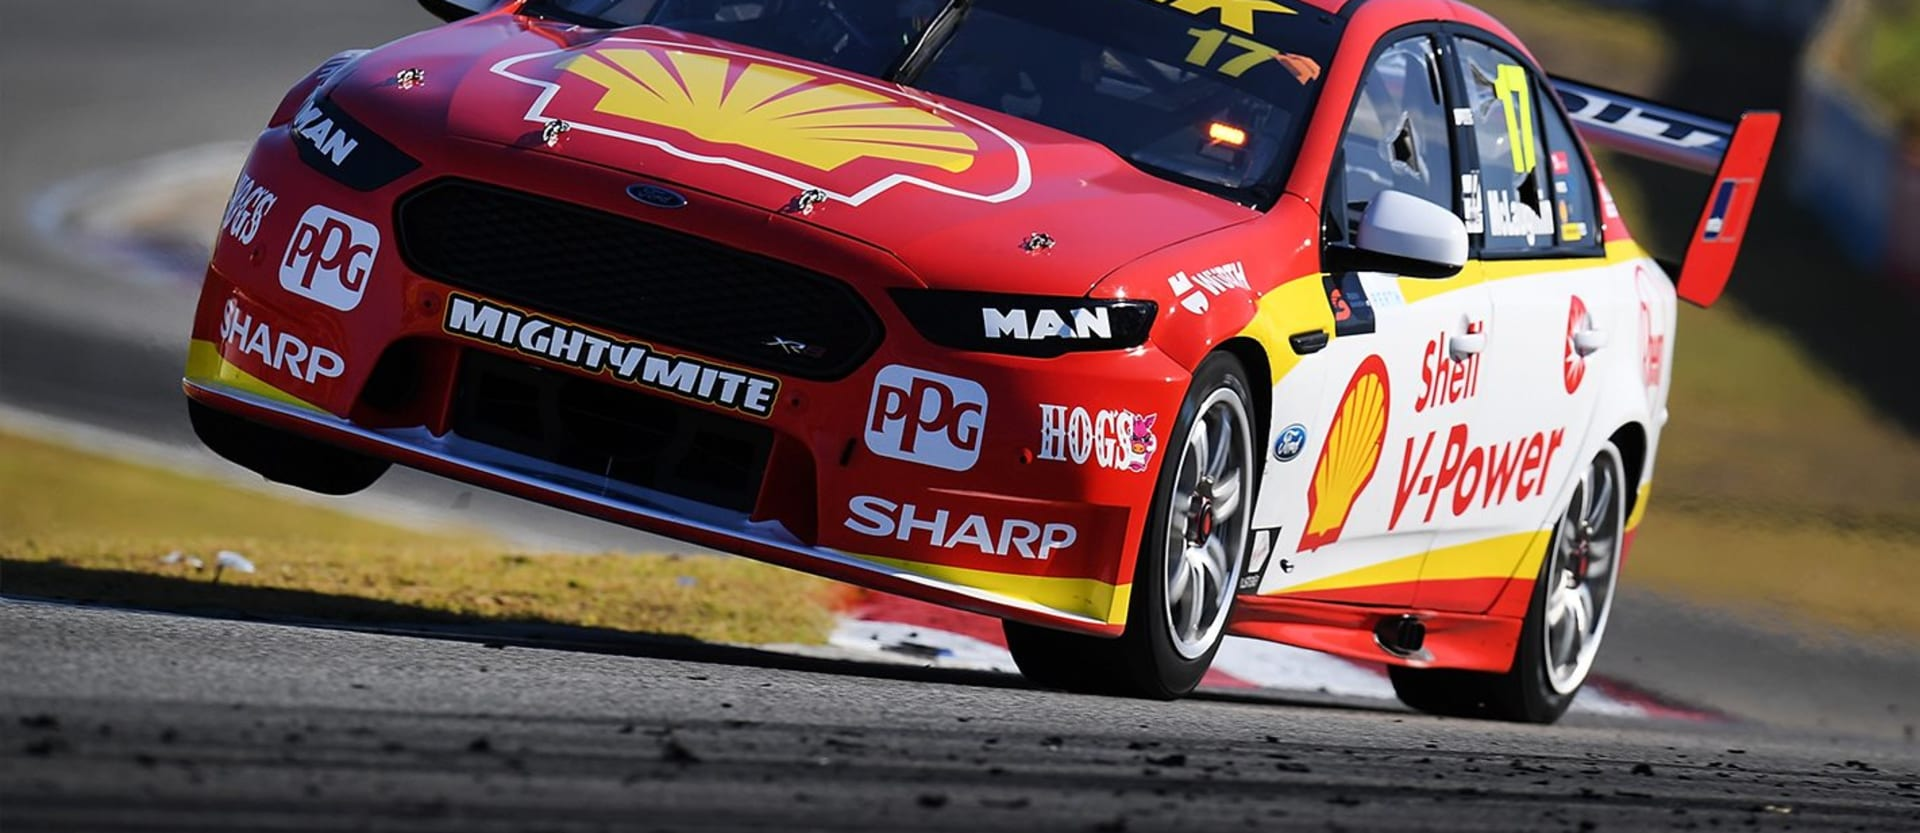 Seven reasons to watch the 2018 Supercars season